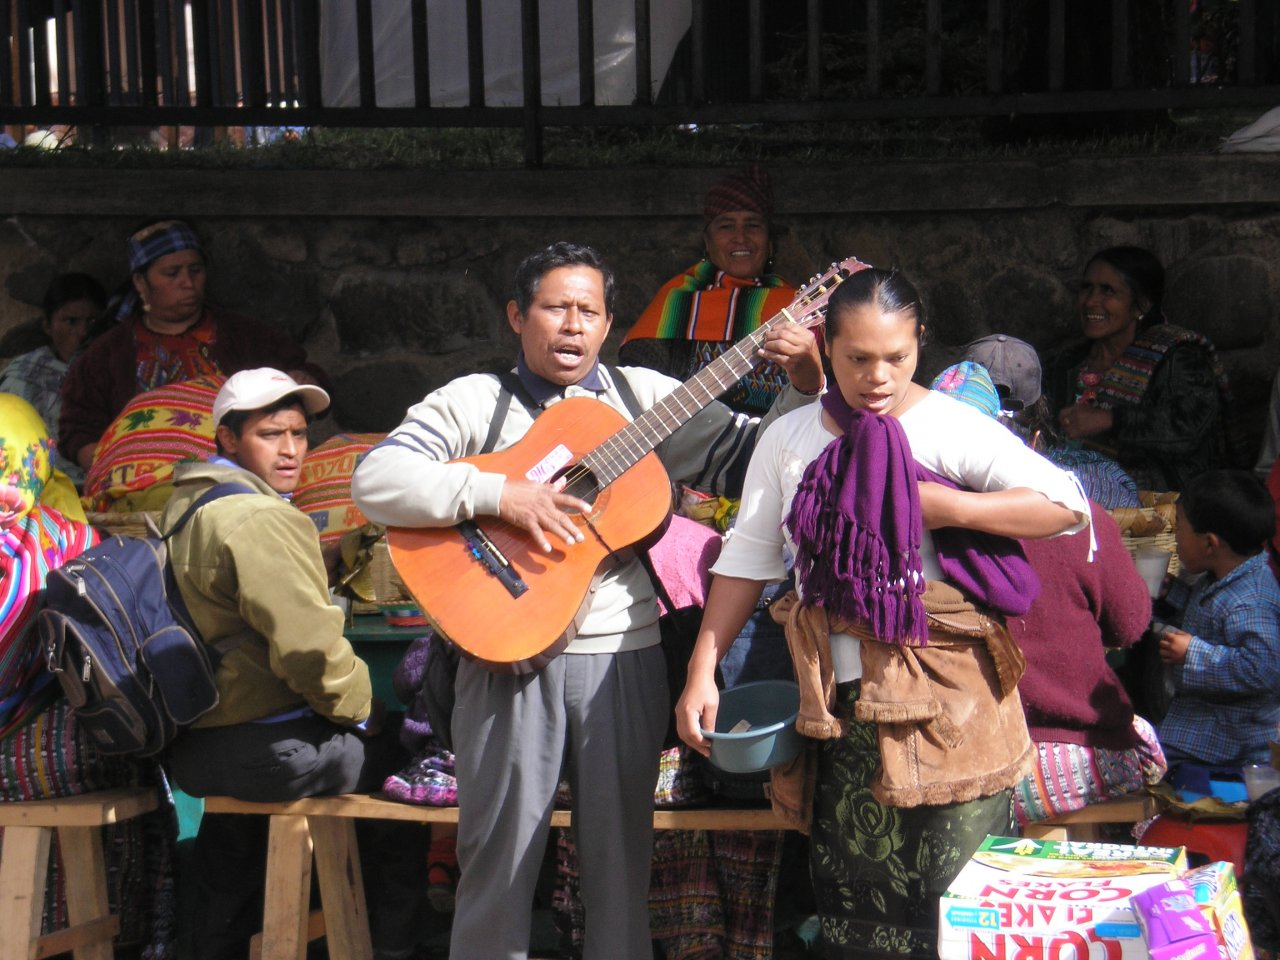 Market Day Breakfast with music